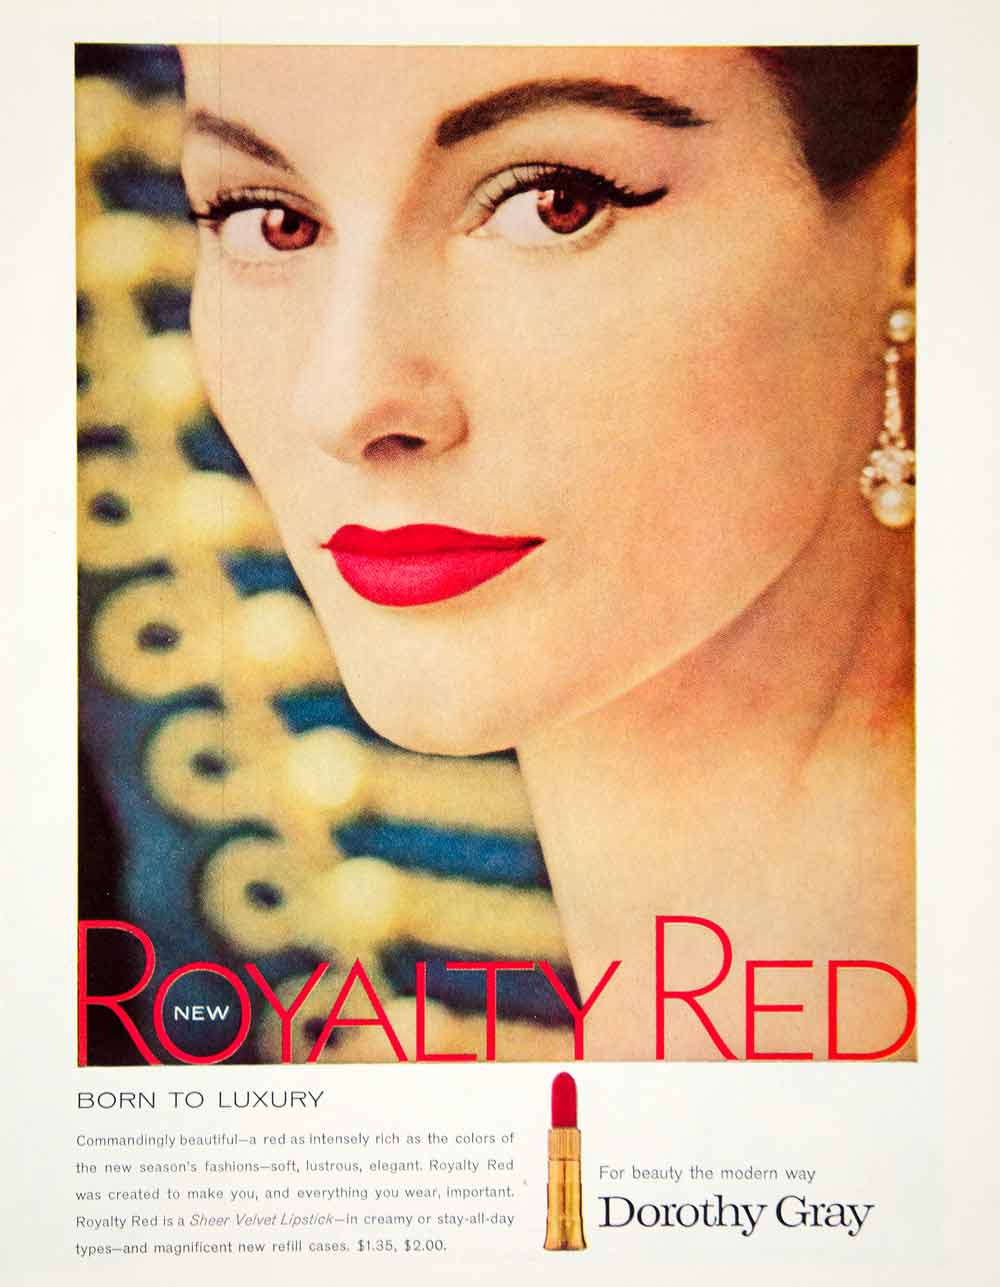 1957 Ad Vintage Dorothy Gray Royalty Red Lipstick Tube Beauty Lips Cosmetic YPP4